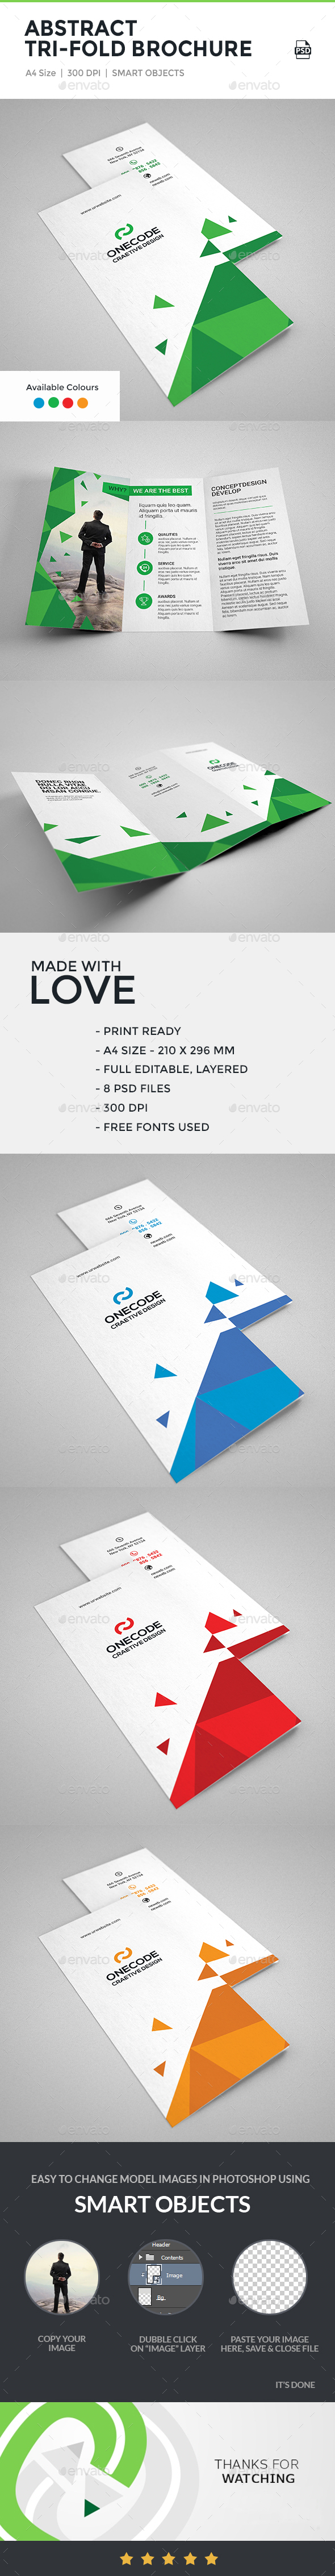 Abstract Tri-Fold Brochure - Corporate Brochures